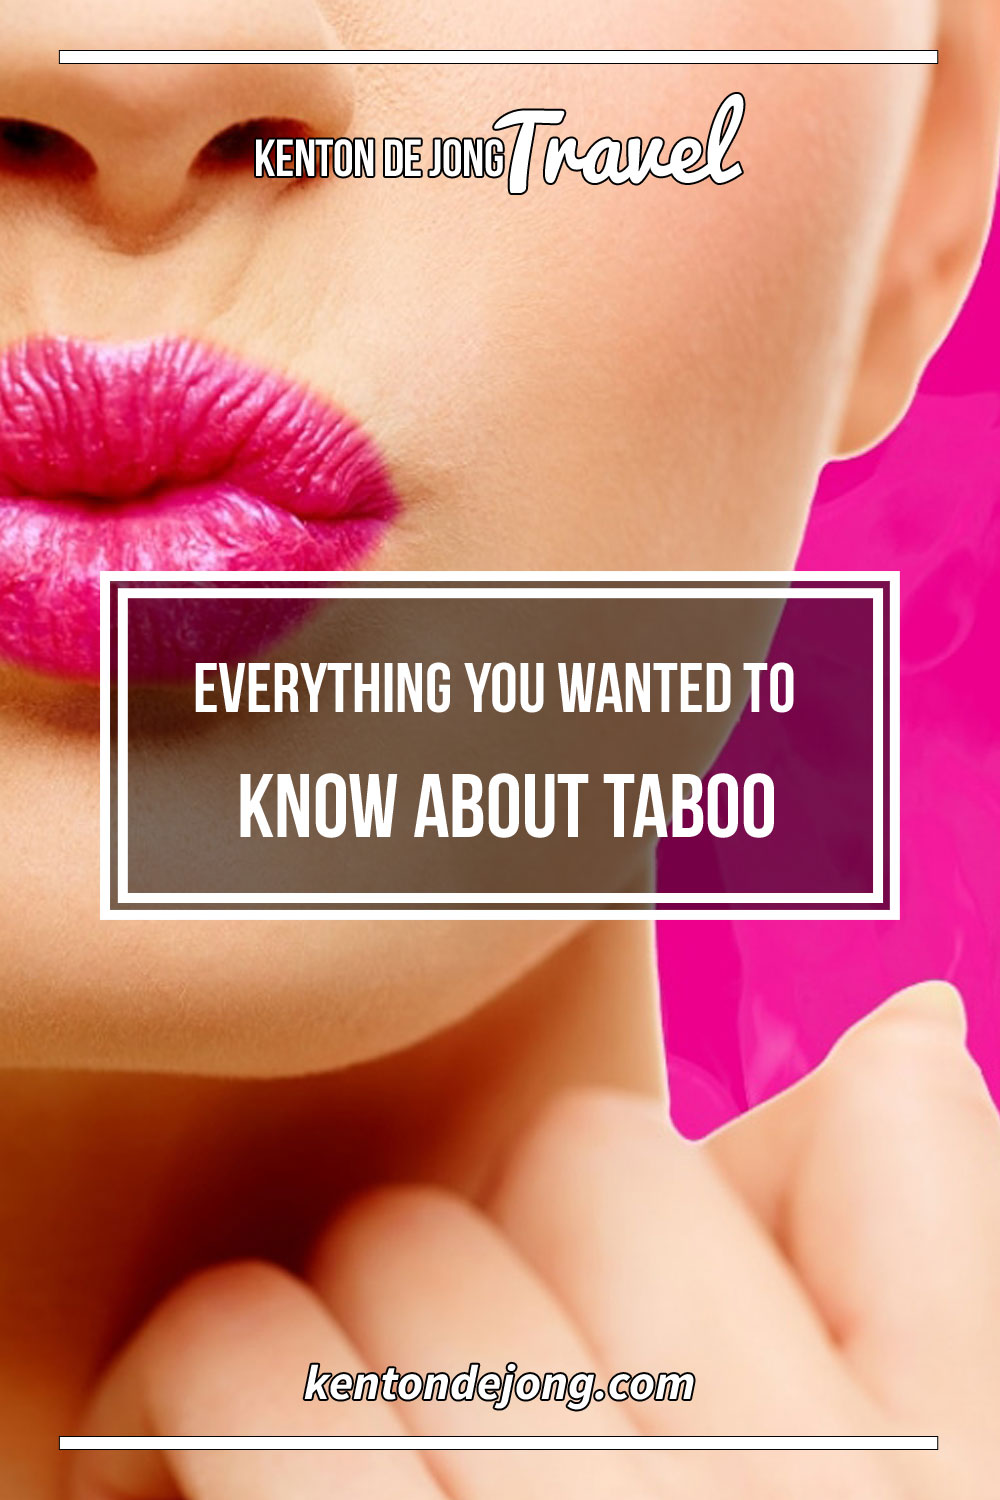 Everything You Wanted to Know About Taboo